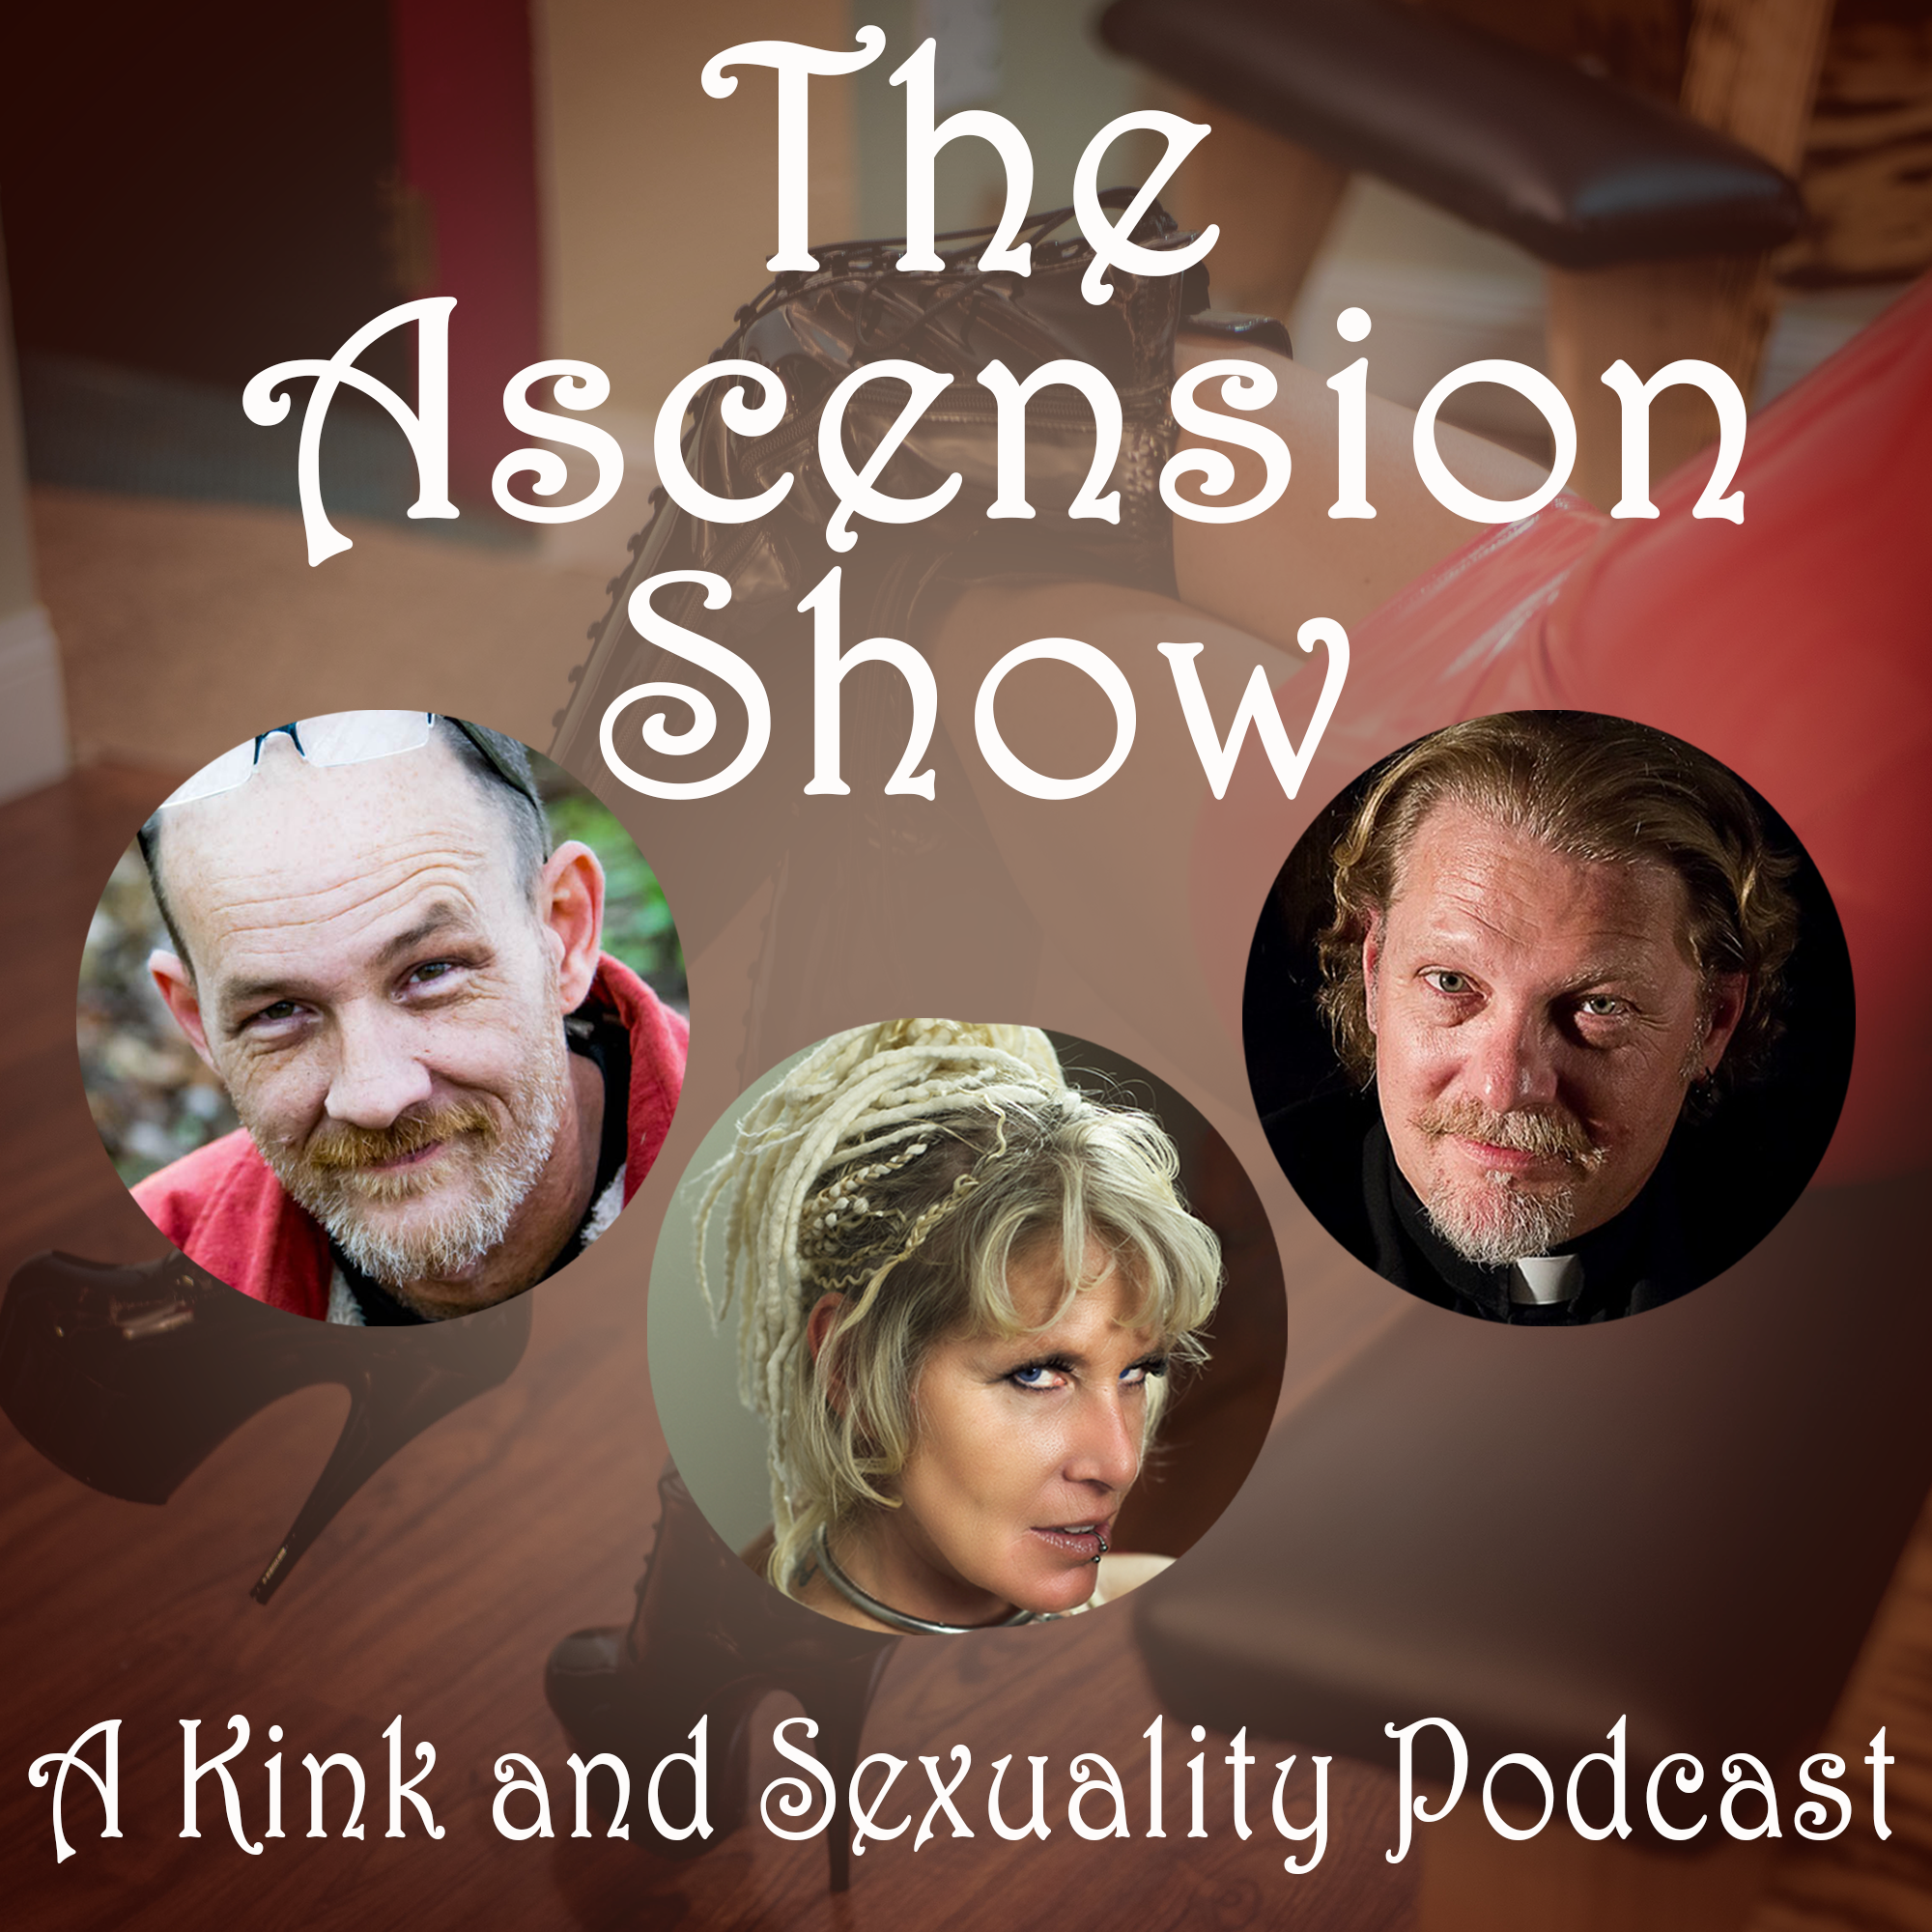 The Ascension Show - Kink Sexuality Podcast show art